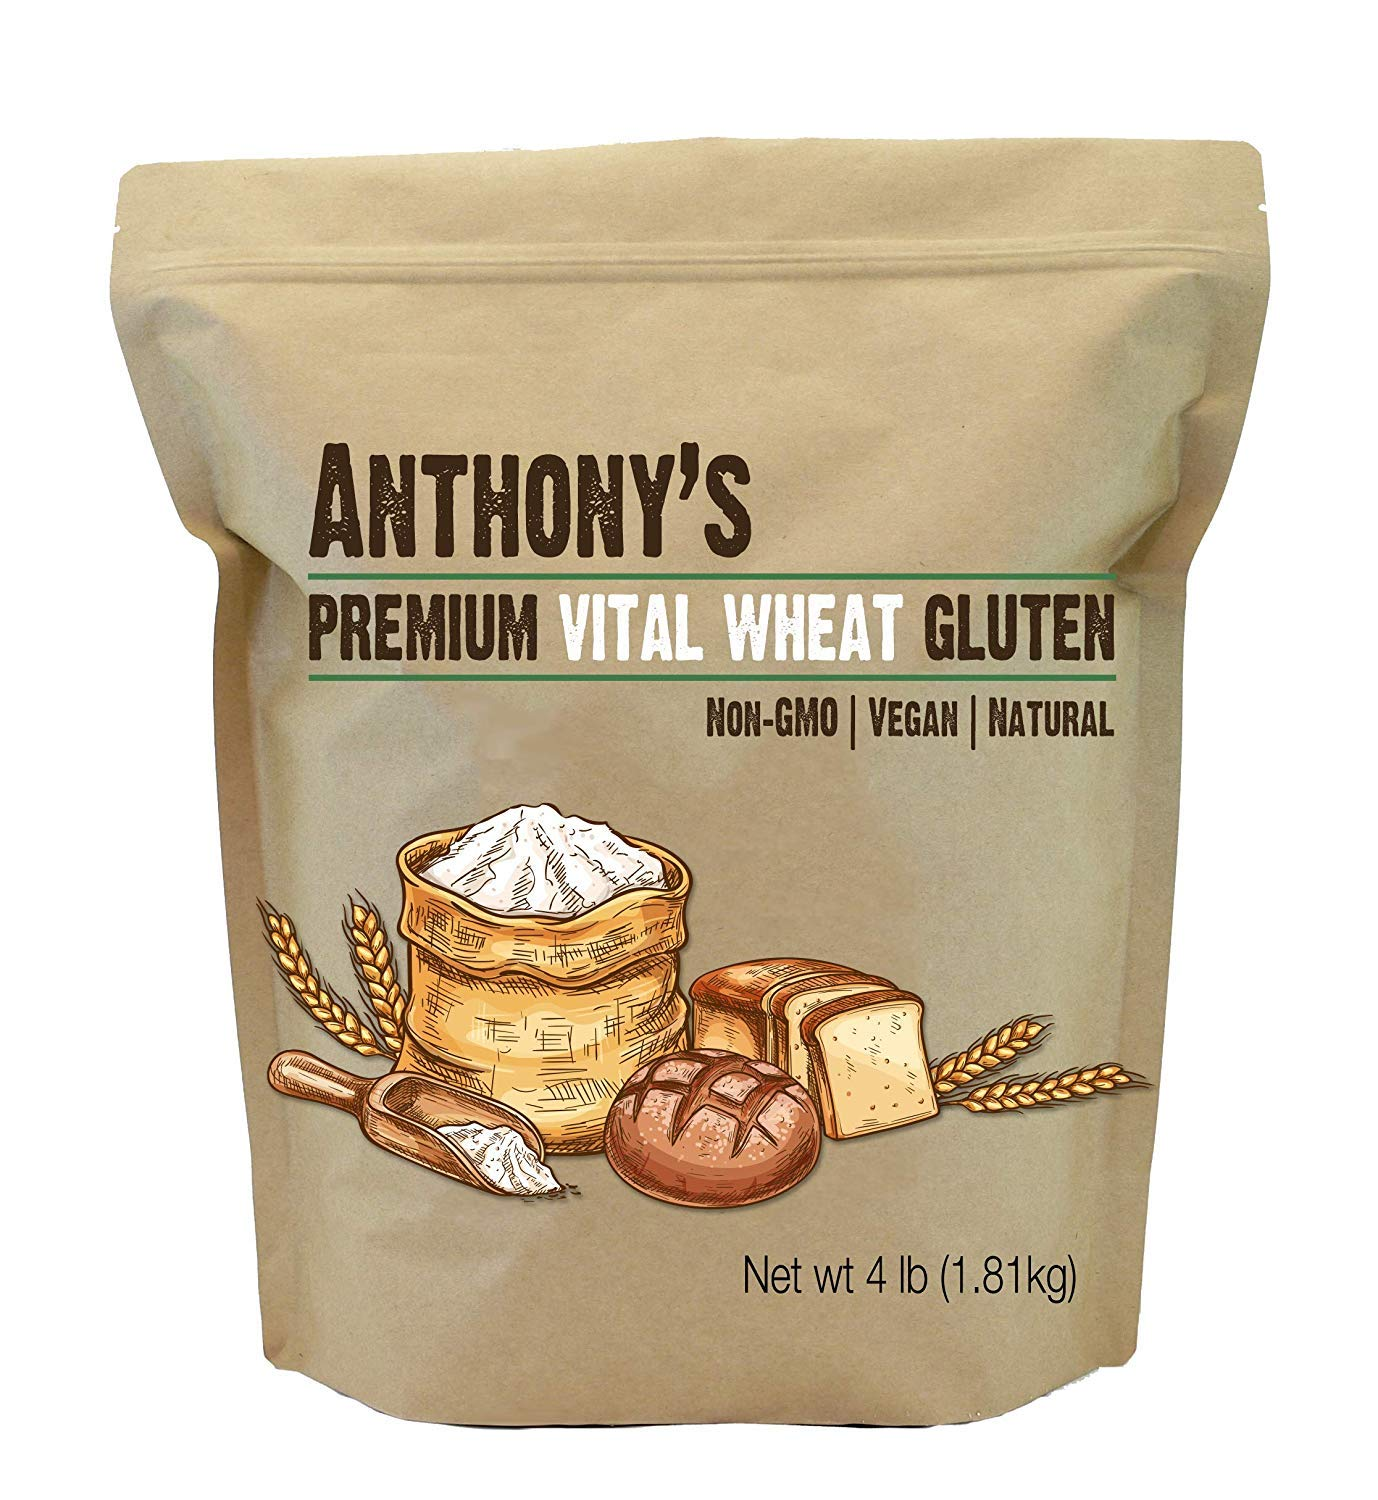 Anthony's Vital Wheat Gluten Natural Protein wholesale 4lbs High Veg in Over item handling